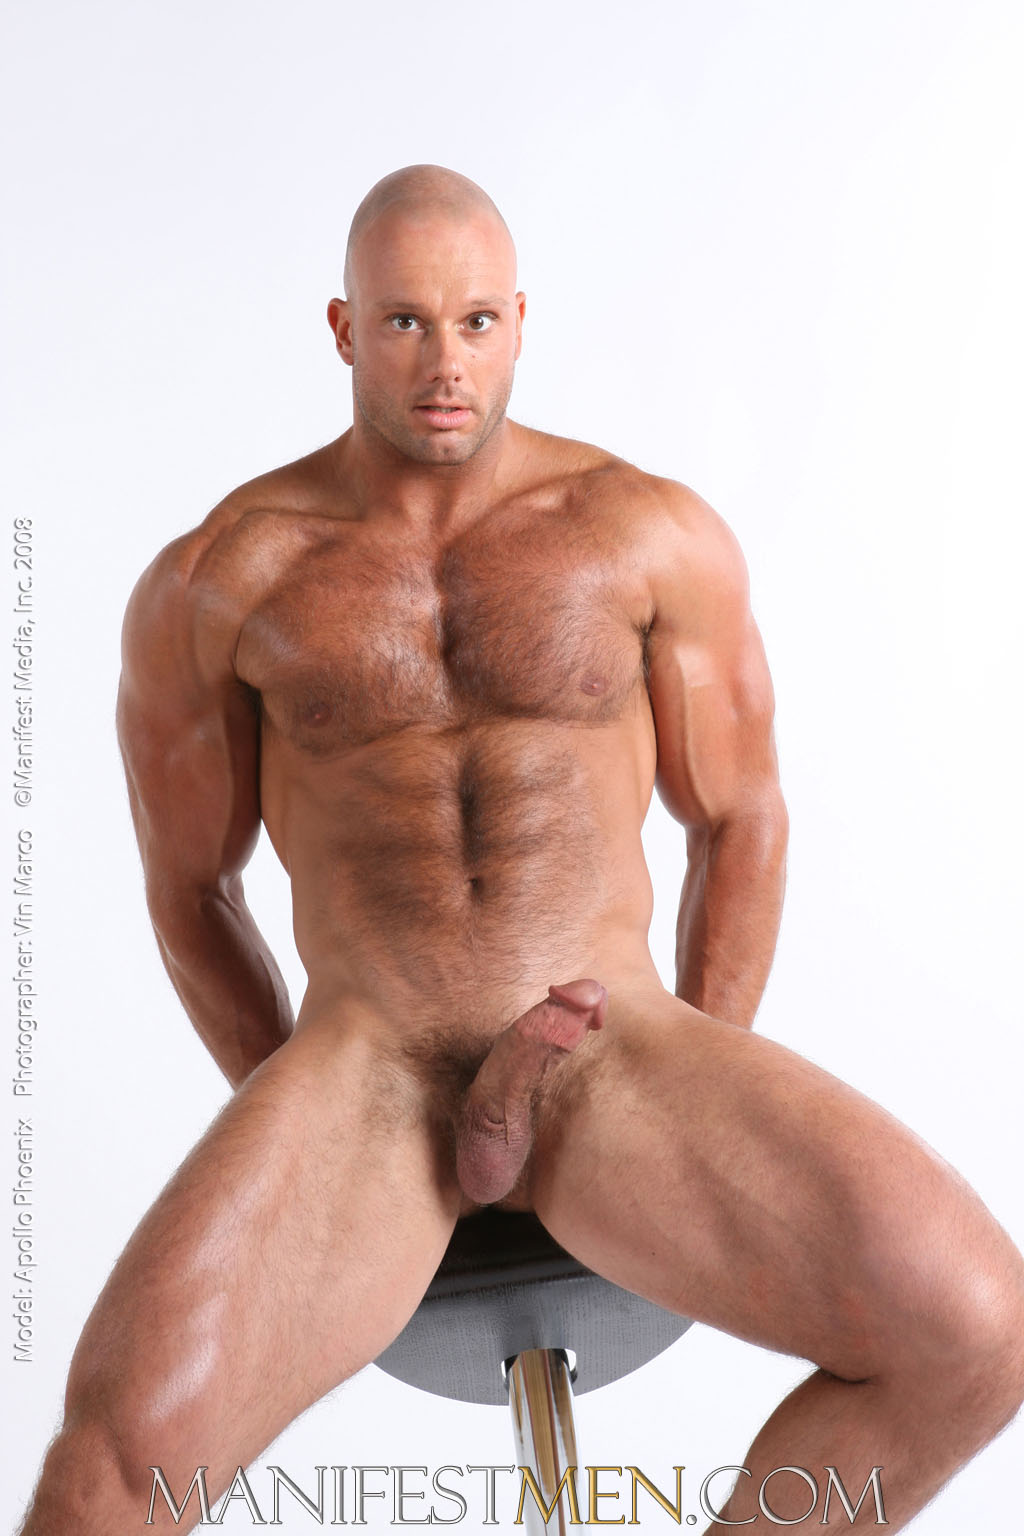 Are not hot nude muscle man remarkable